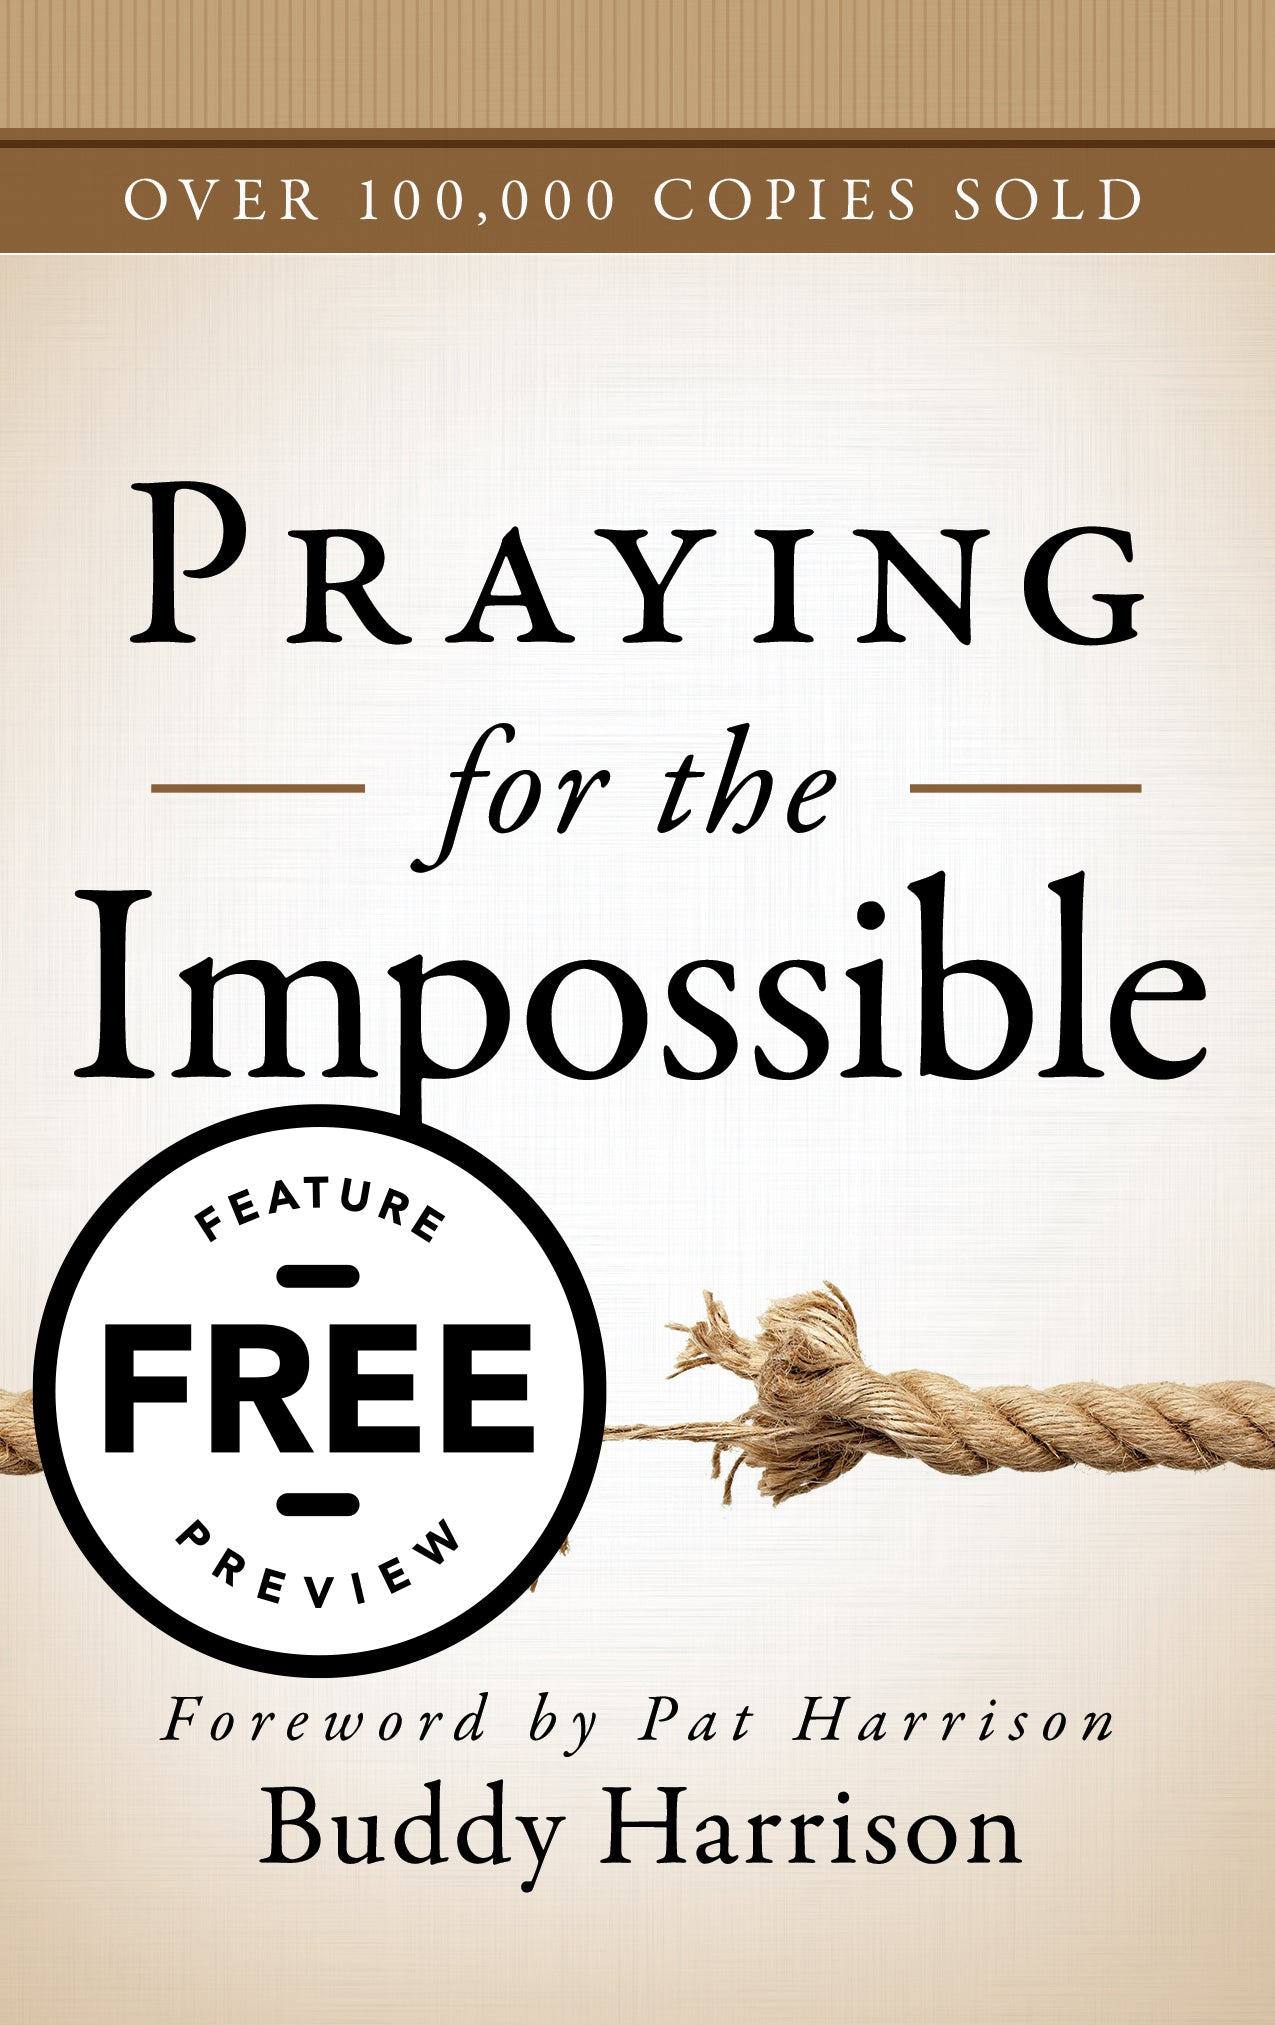 Praying for the Impossible Free Feature Message (PDF Download)